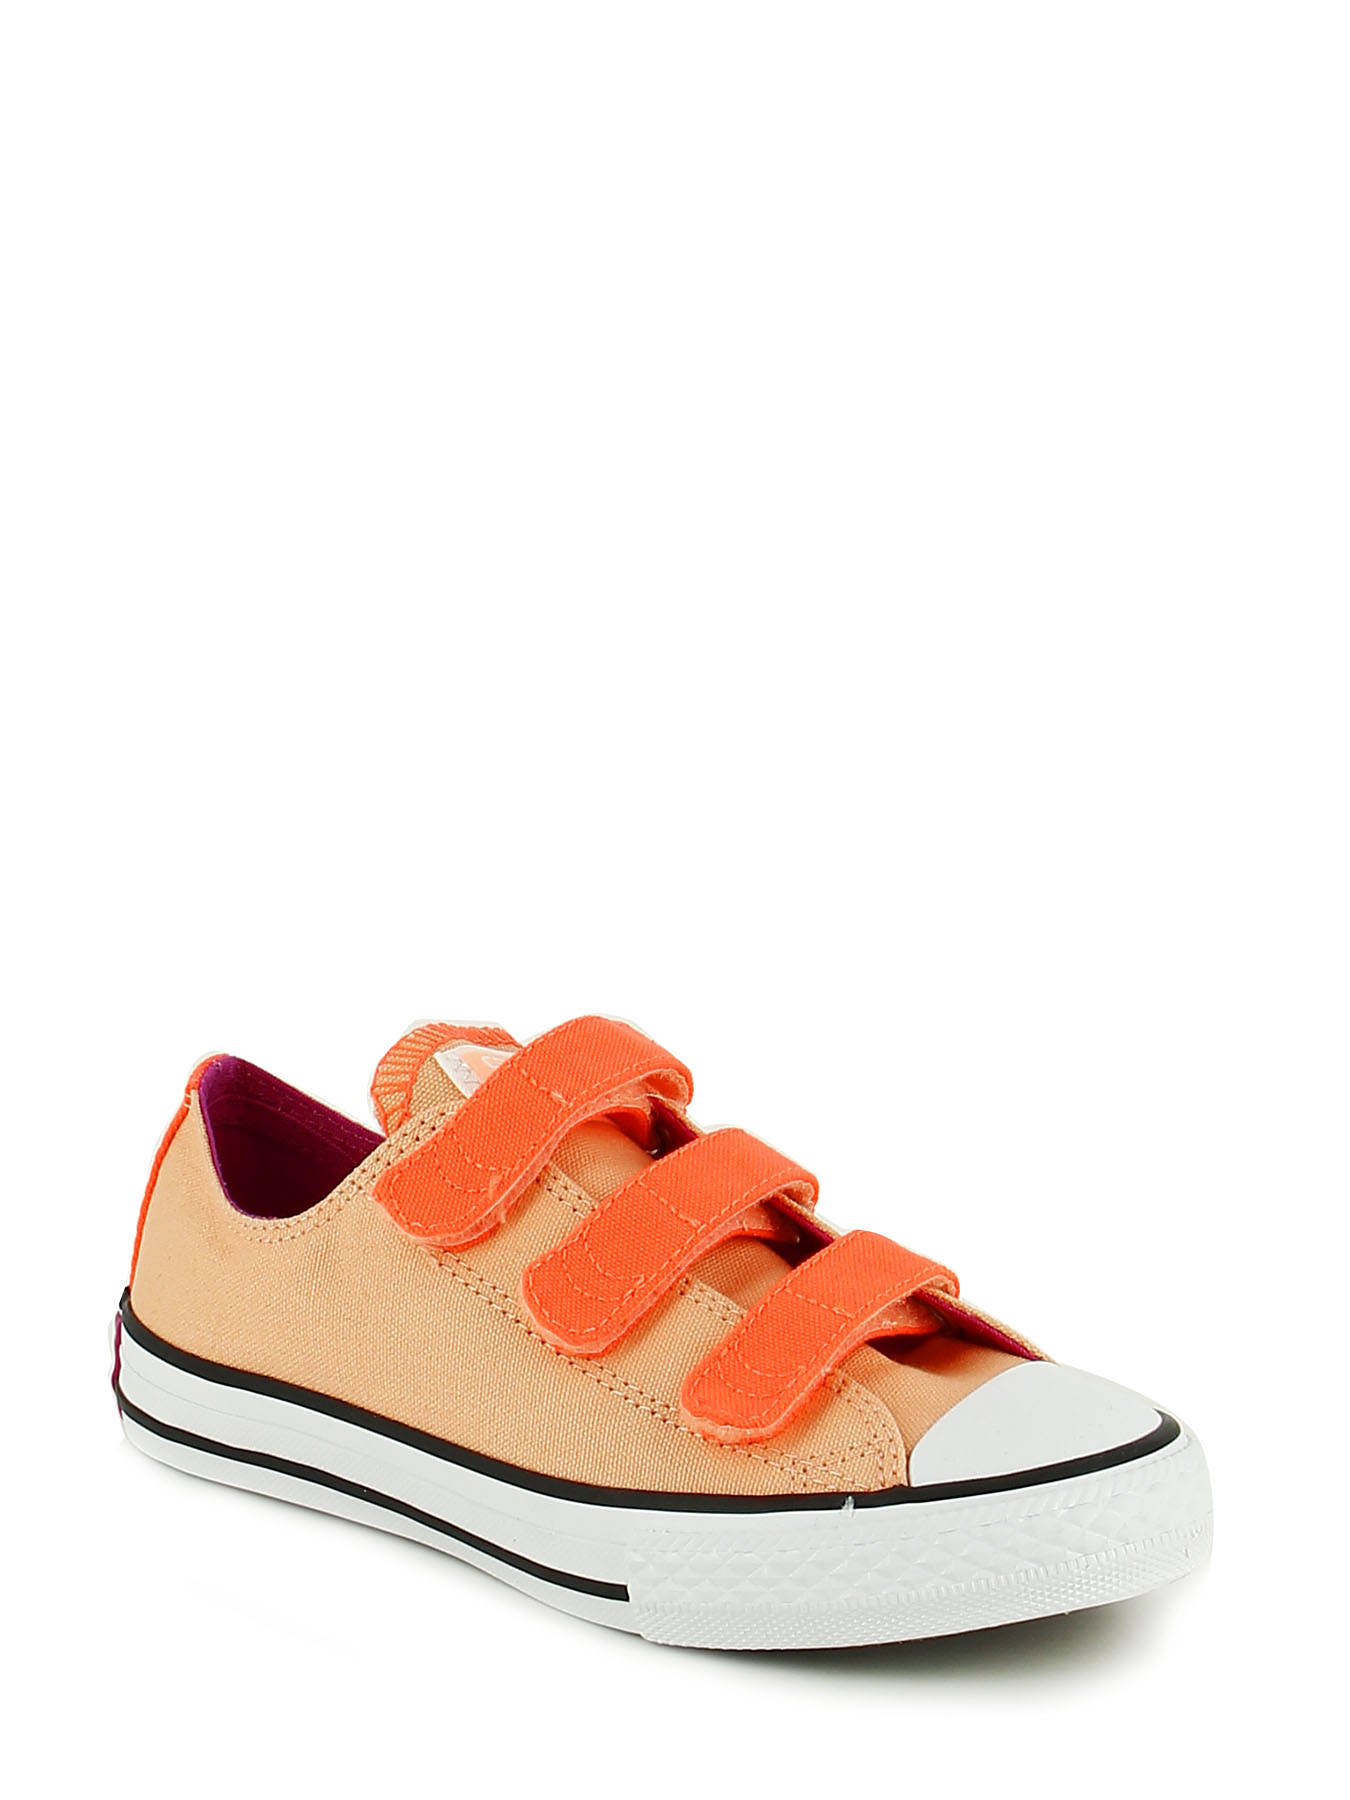 ... Chuck Taylor All Star 3v Ox Converse Orange baskets mode 656075c ... bf7263f7bdb8